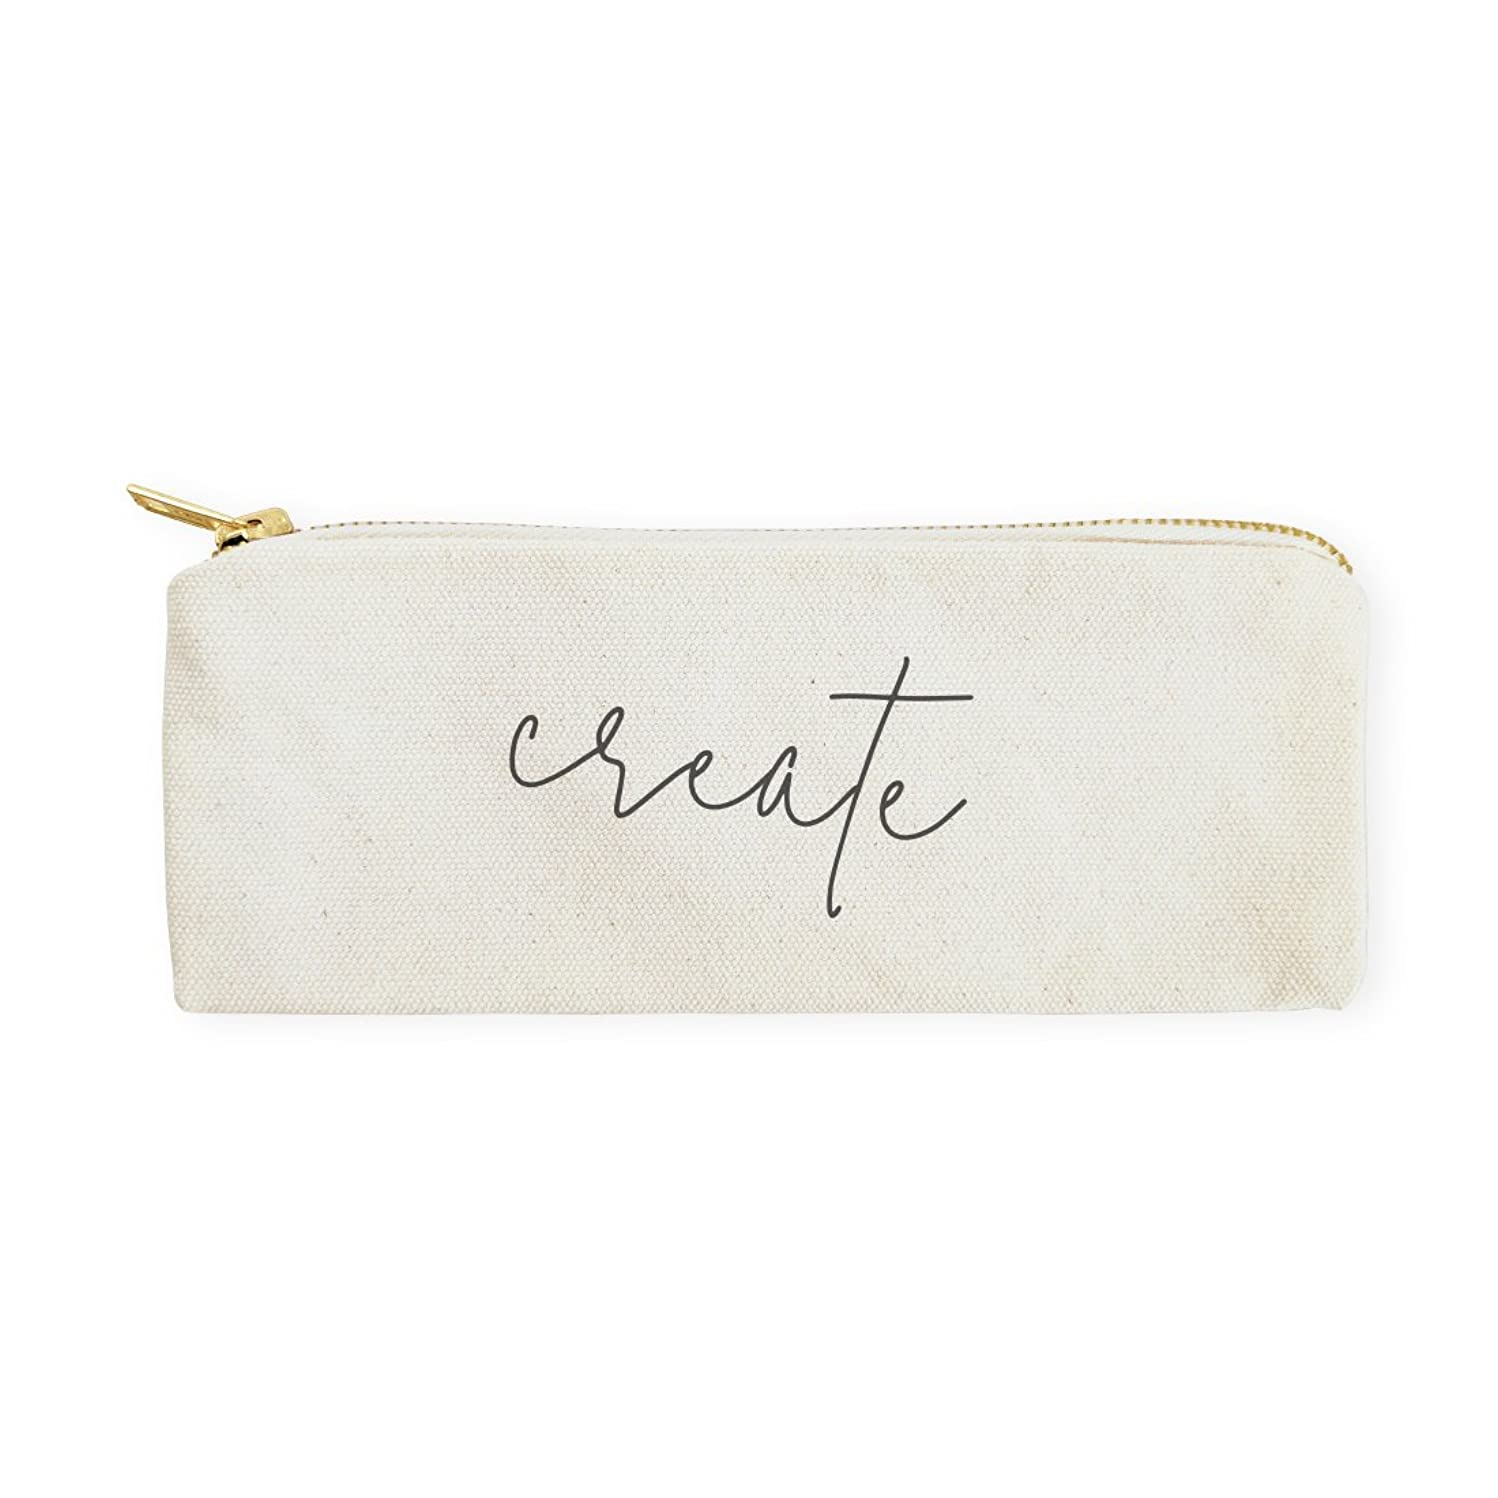 The Cotton & Canvas Co. Create Pencil Case, Cosmetic Case and Travel Pouch for Office and Back to School